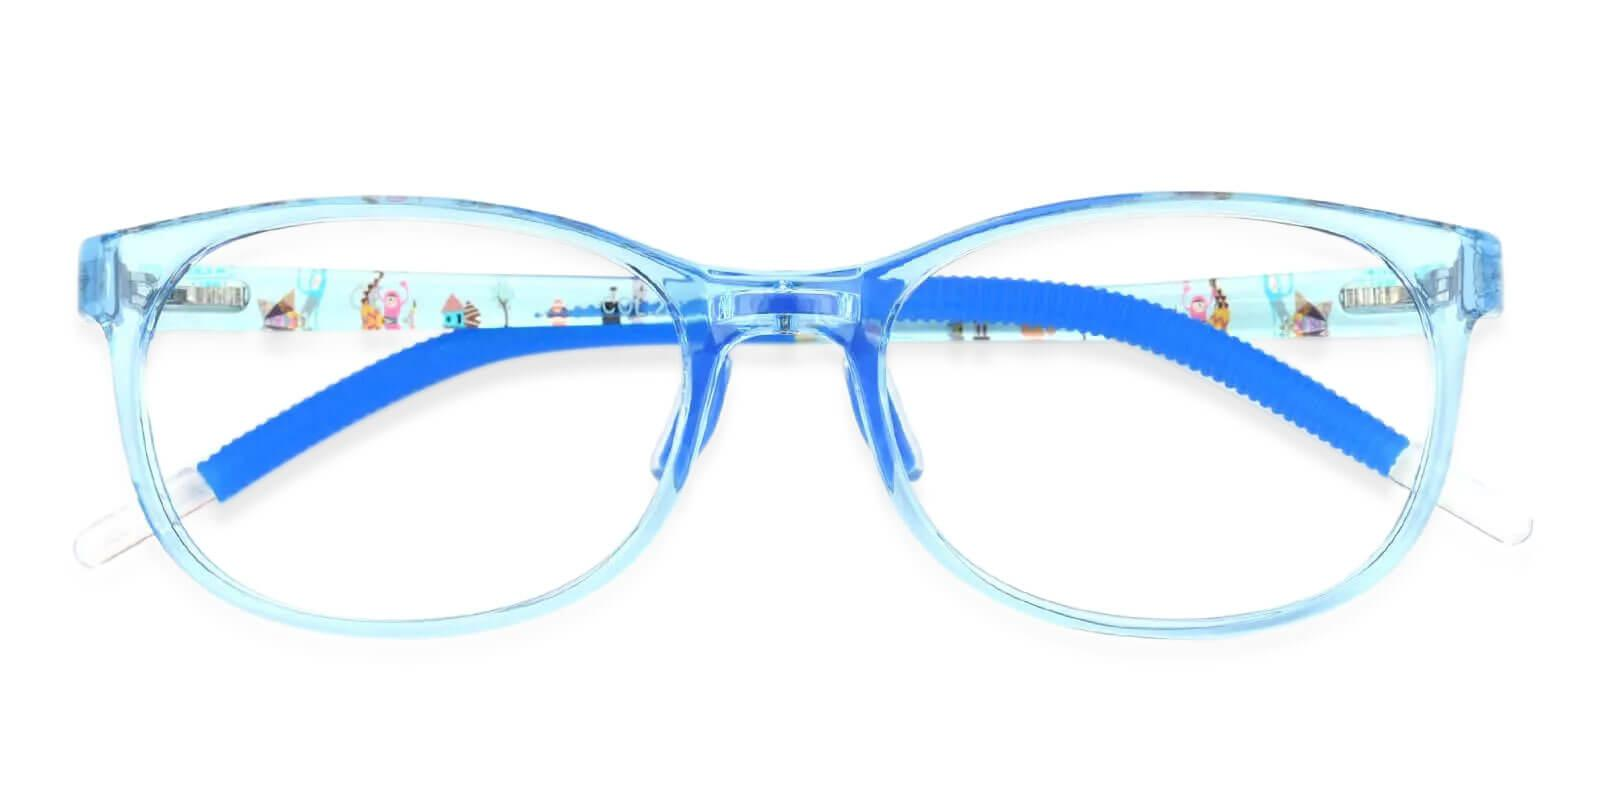 Kids-Via Blue Acetate Eyeglasses , UniversalBridgeFit Frames from ABBE Glasses